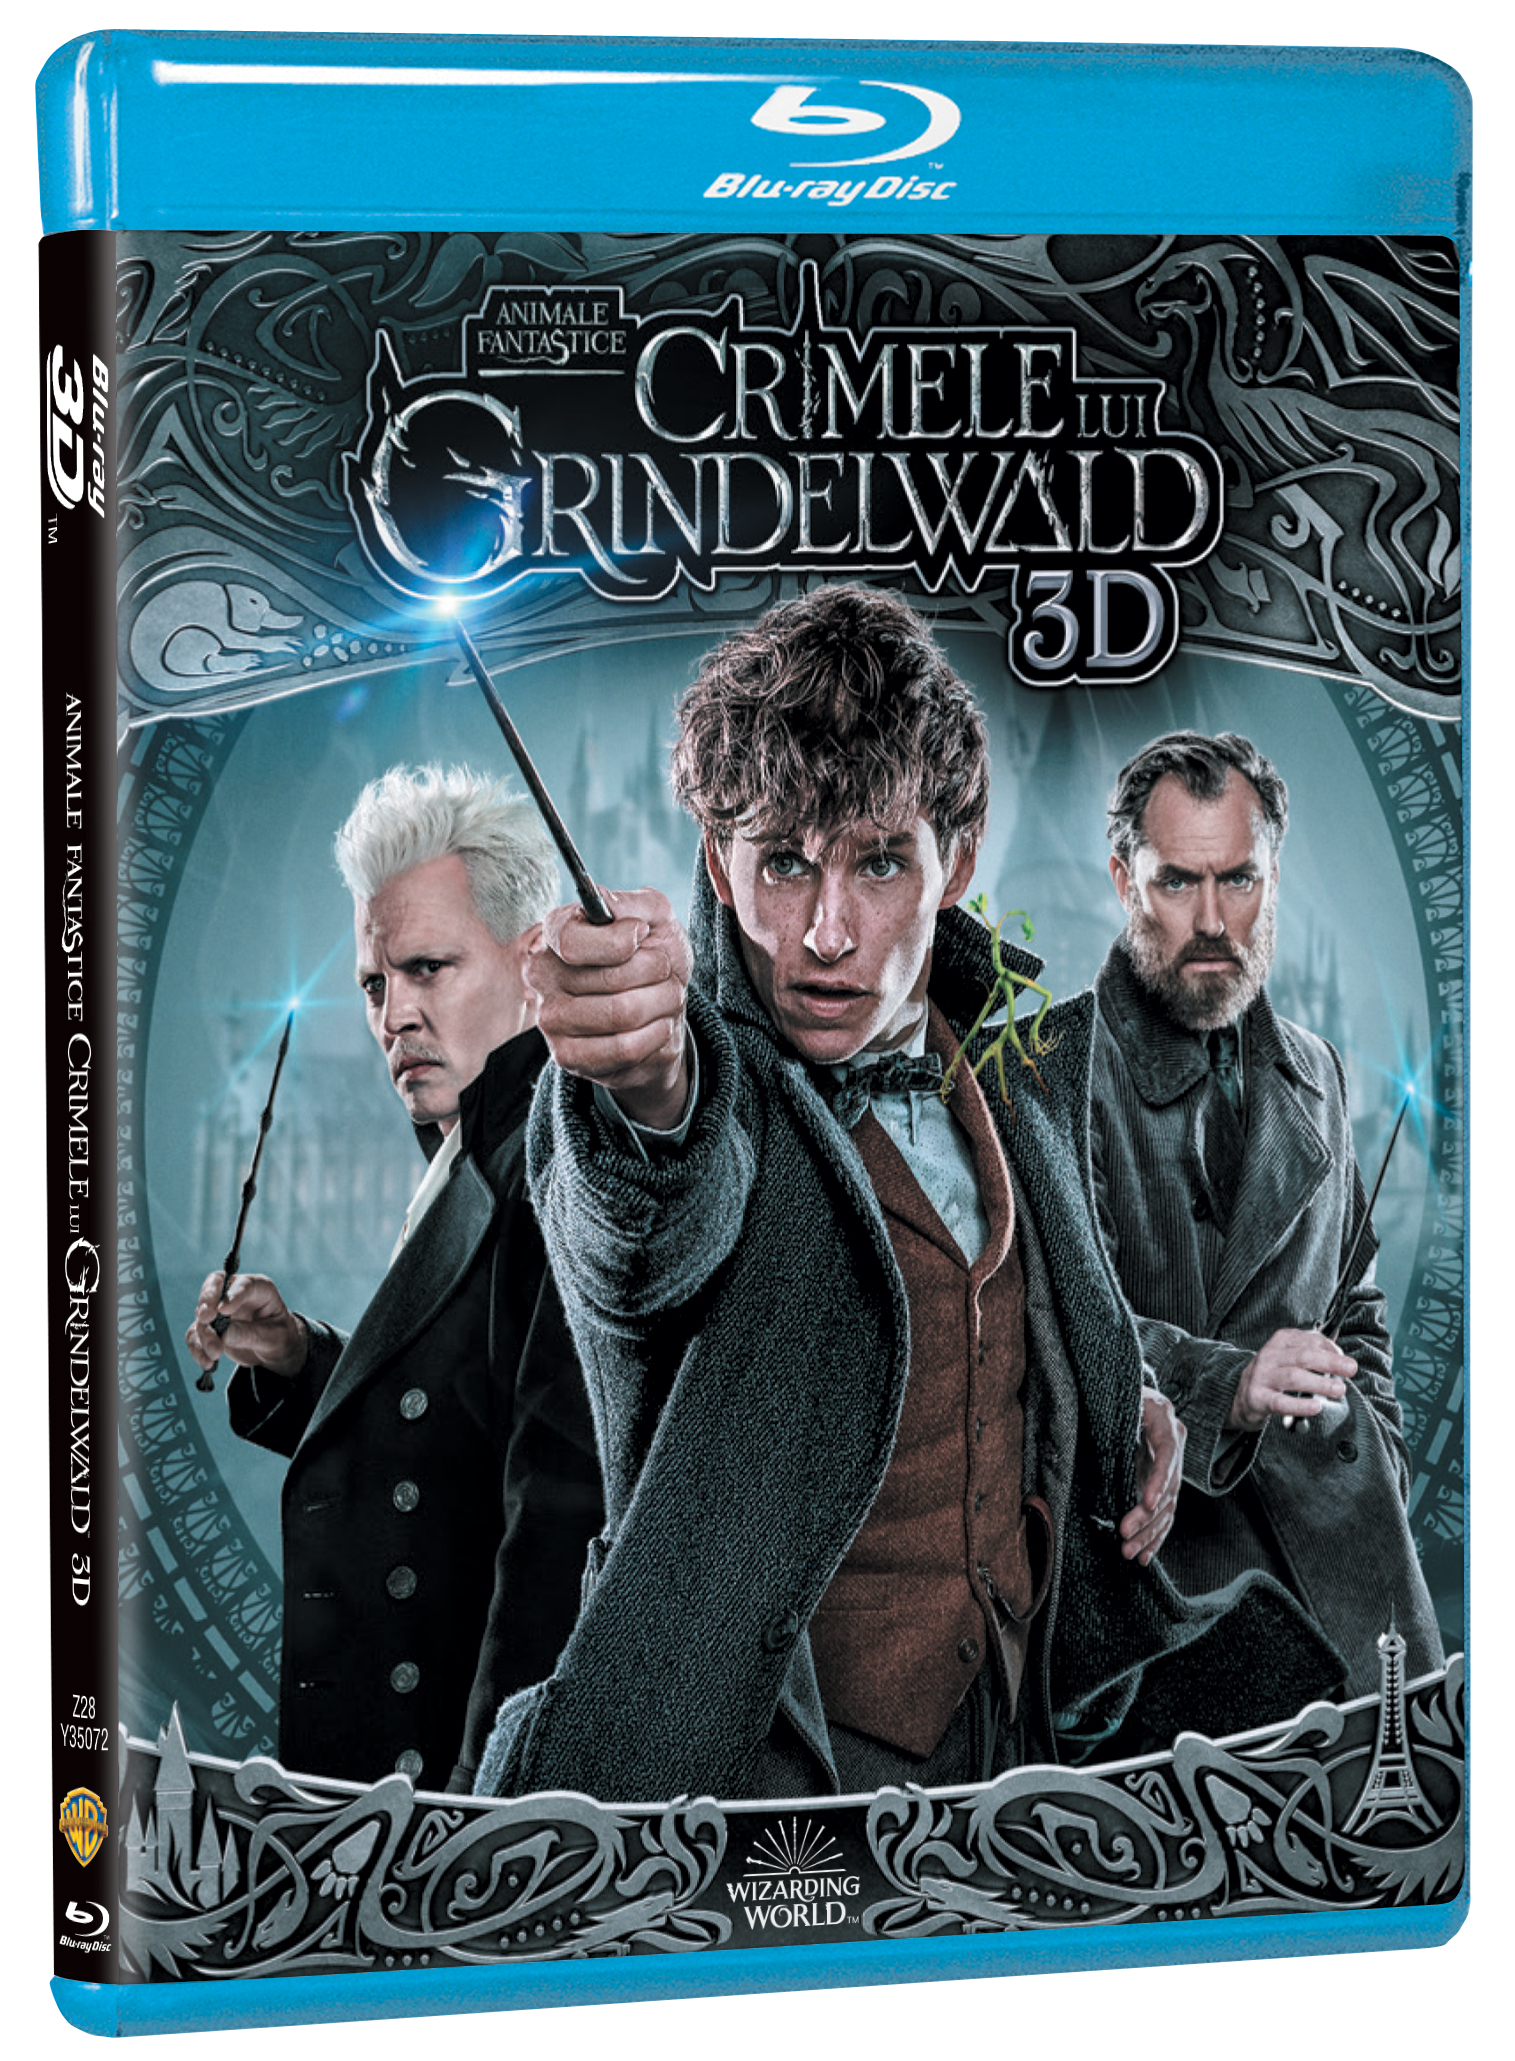 Animale Fantastice: Crimele lui Grindelwald / Fantastic Beasts: The Crimes of Grindelwald - 3D (Blu-Ray Disc)